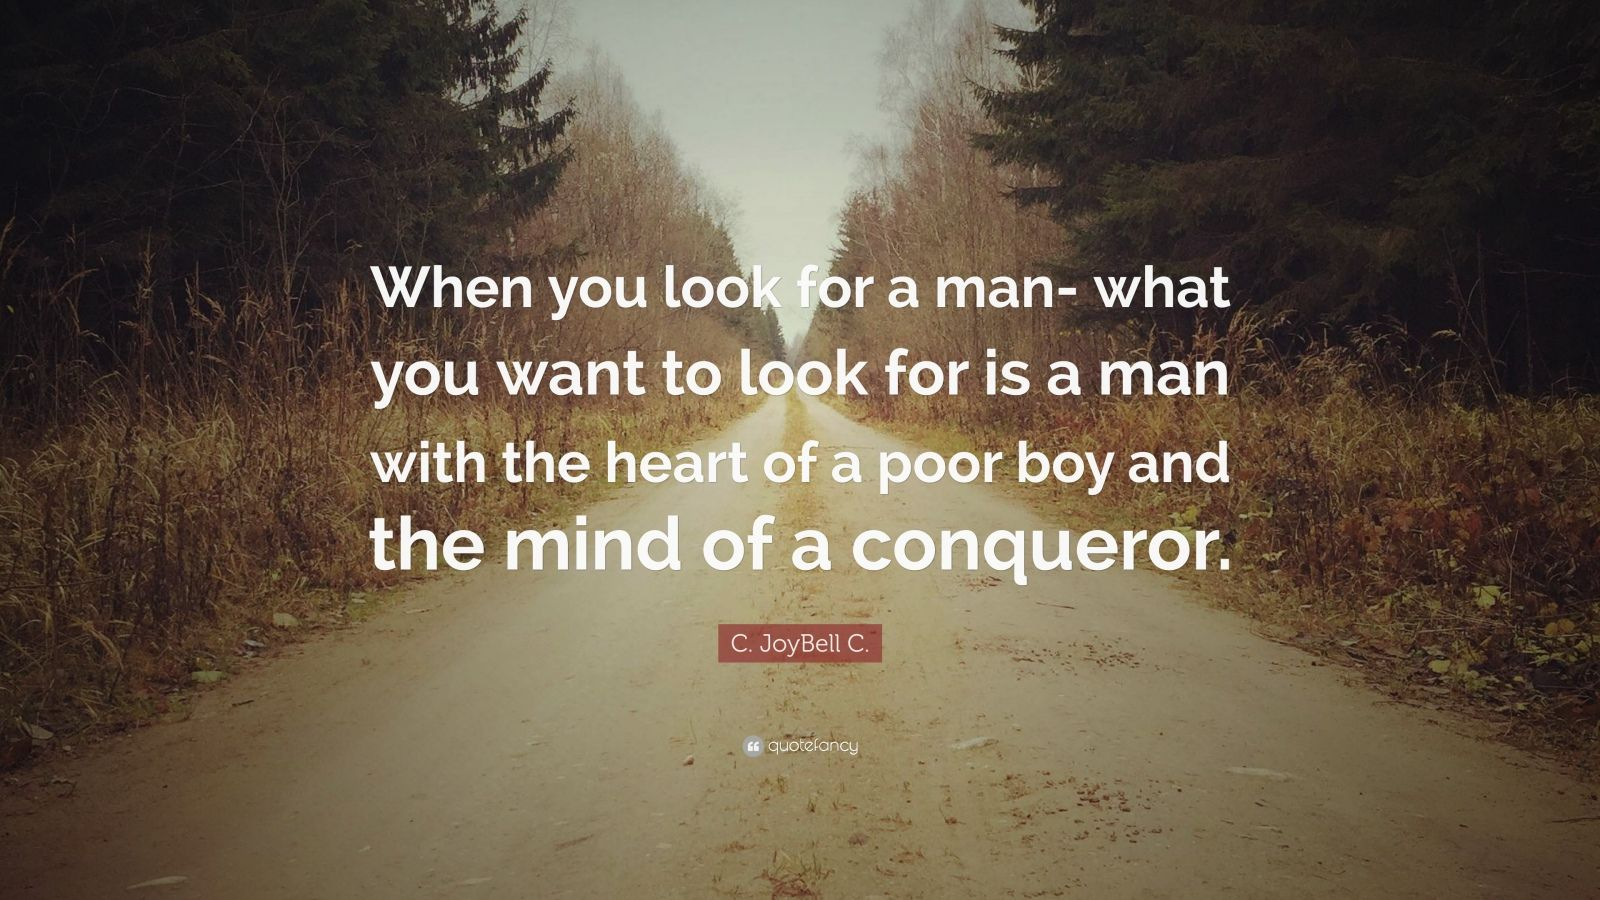 When you look for a man- what you want to look for is a man with the heart of a poor boy and the mind of a conqueror.